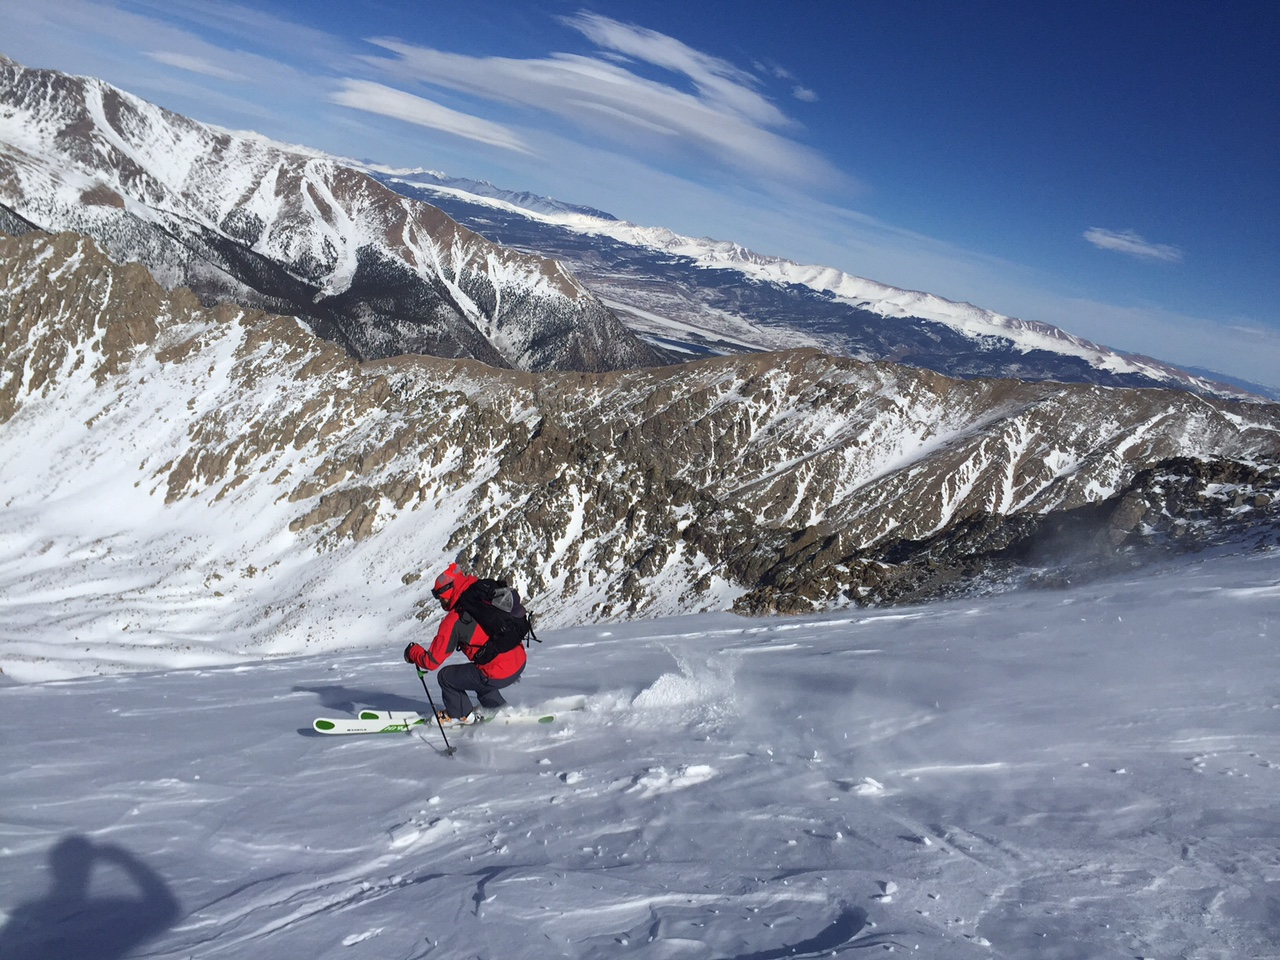 Scott carving at 14,000' with Ellingwood Ridge in the backdrop.